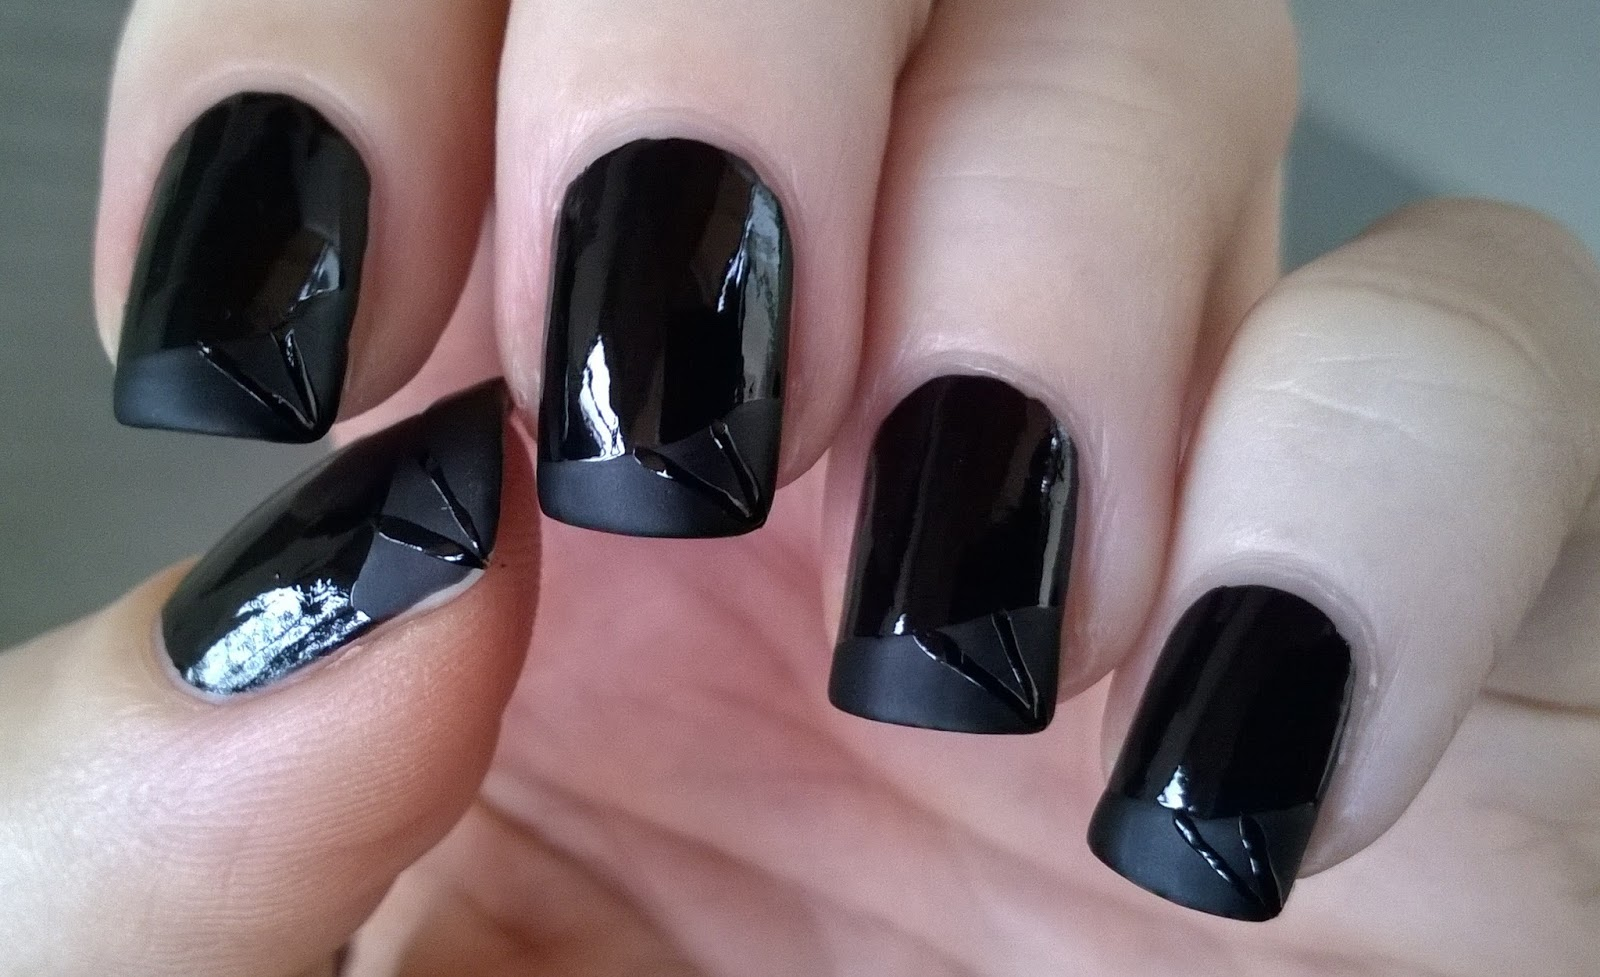 Life World Women: Matte & Glossy Black Nail Art / Matte French Tip Nails